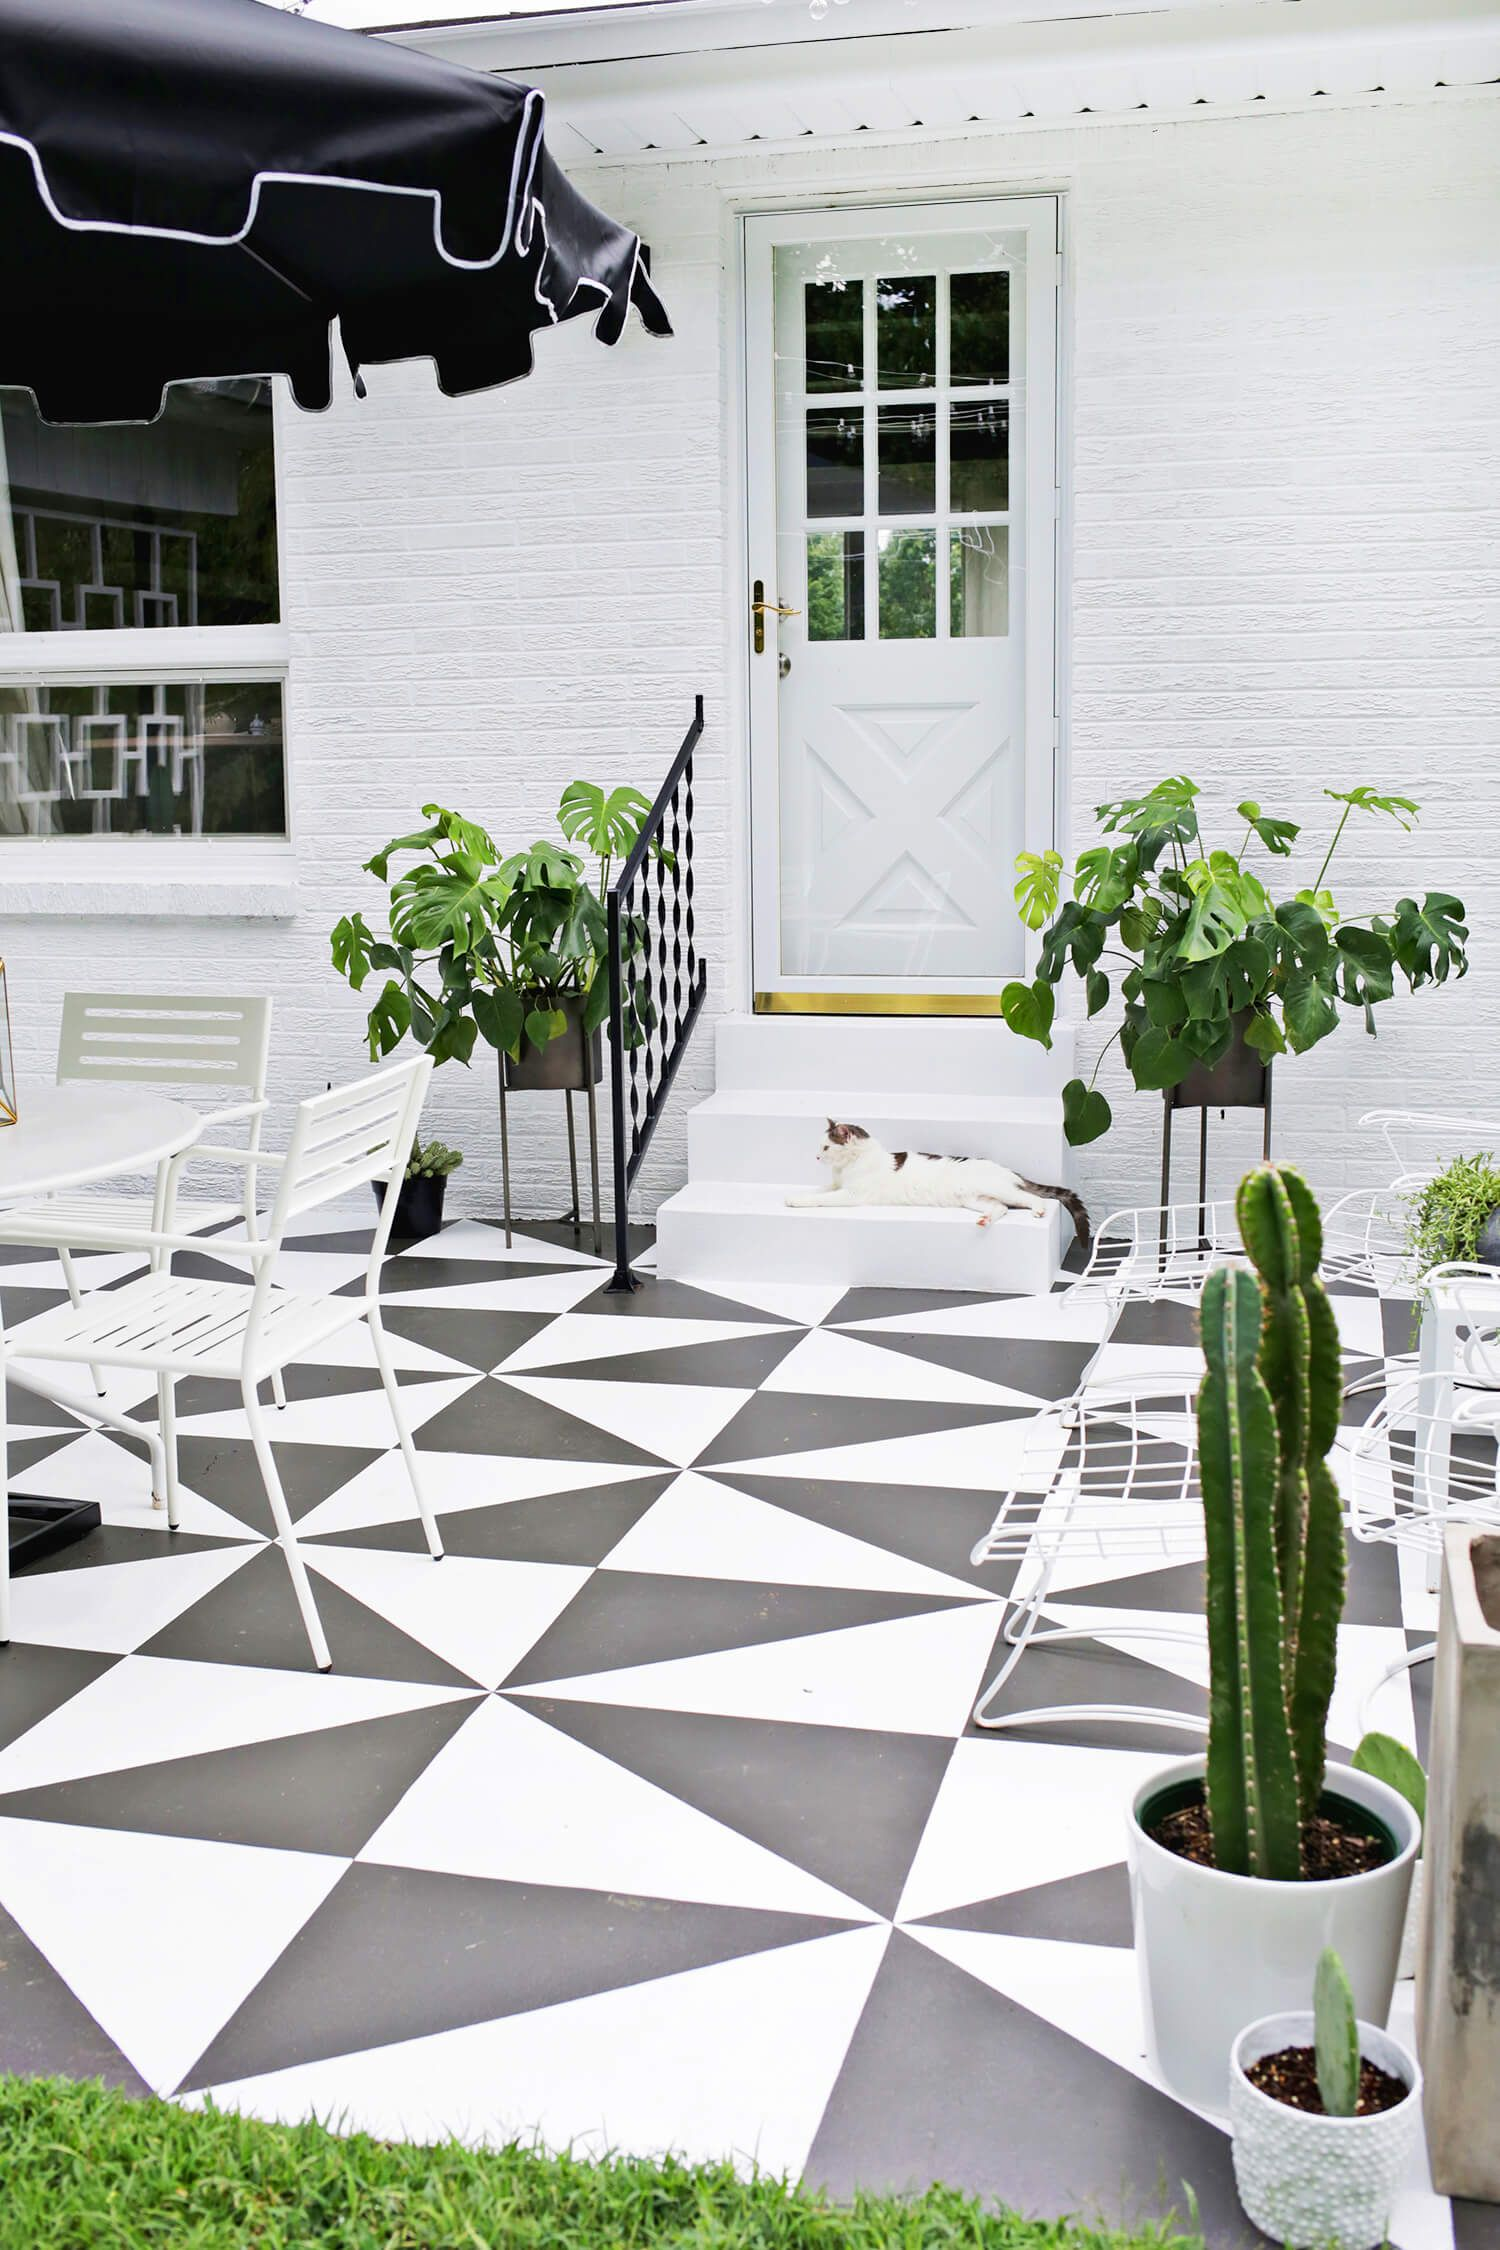 10 beautiful patios and outdoor spaces patio tiles patios and 10 beautiful patios and outdoor spaces dailygadgetfo Images